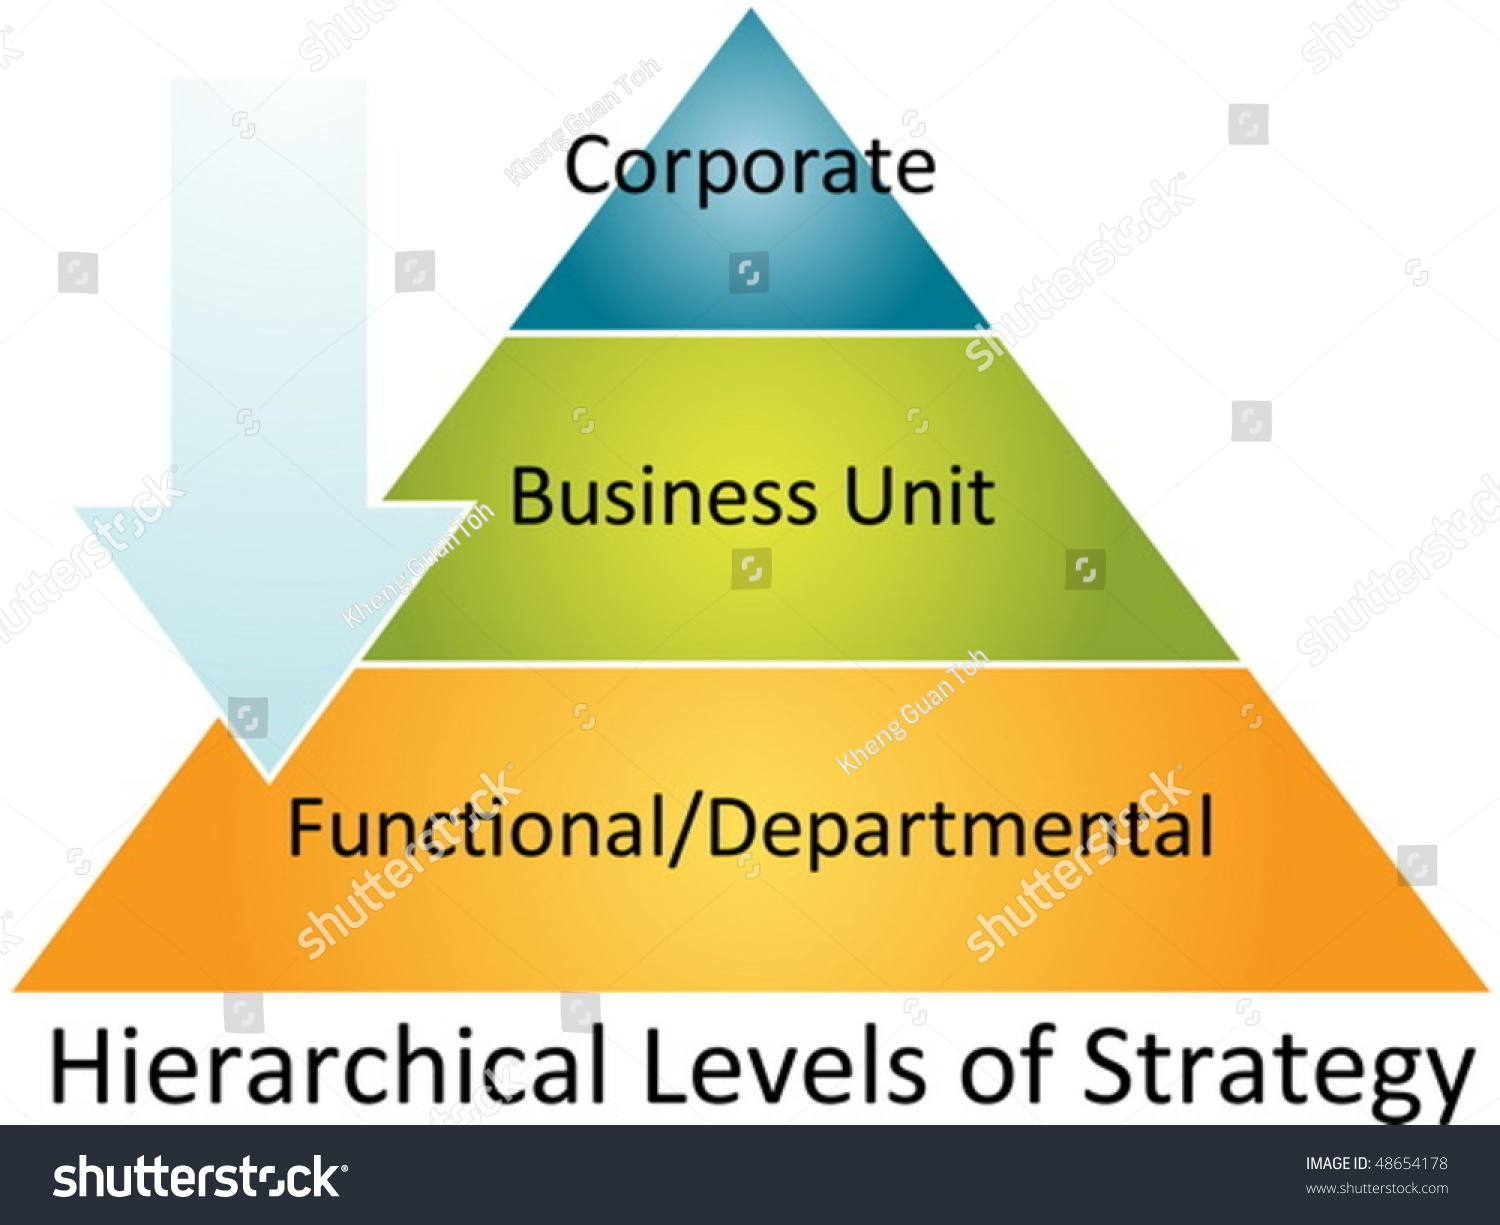 hierarchical strategy pyramid business management concept diagram    hierarchical strategy pyramid business management concept diagram illustration       shutterstock